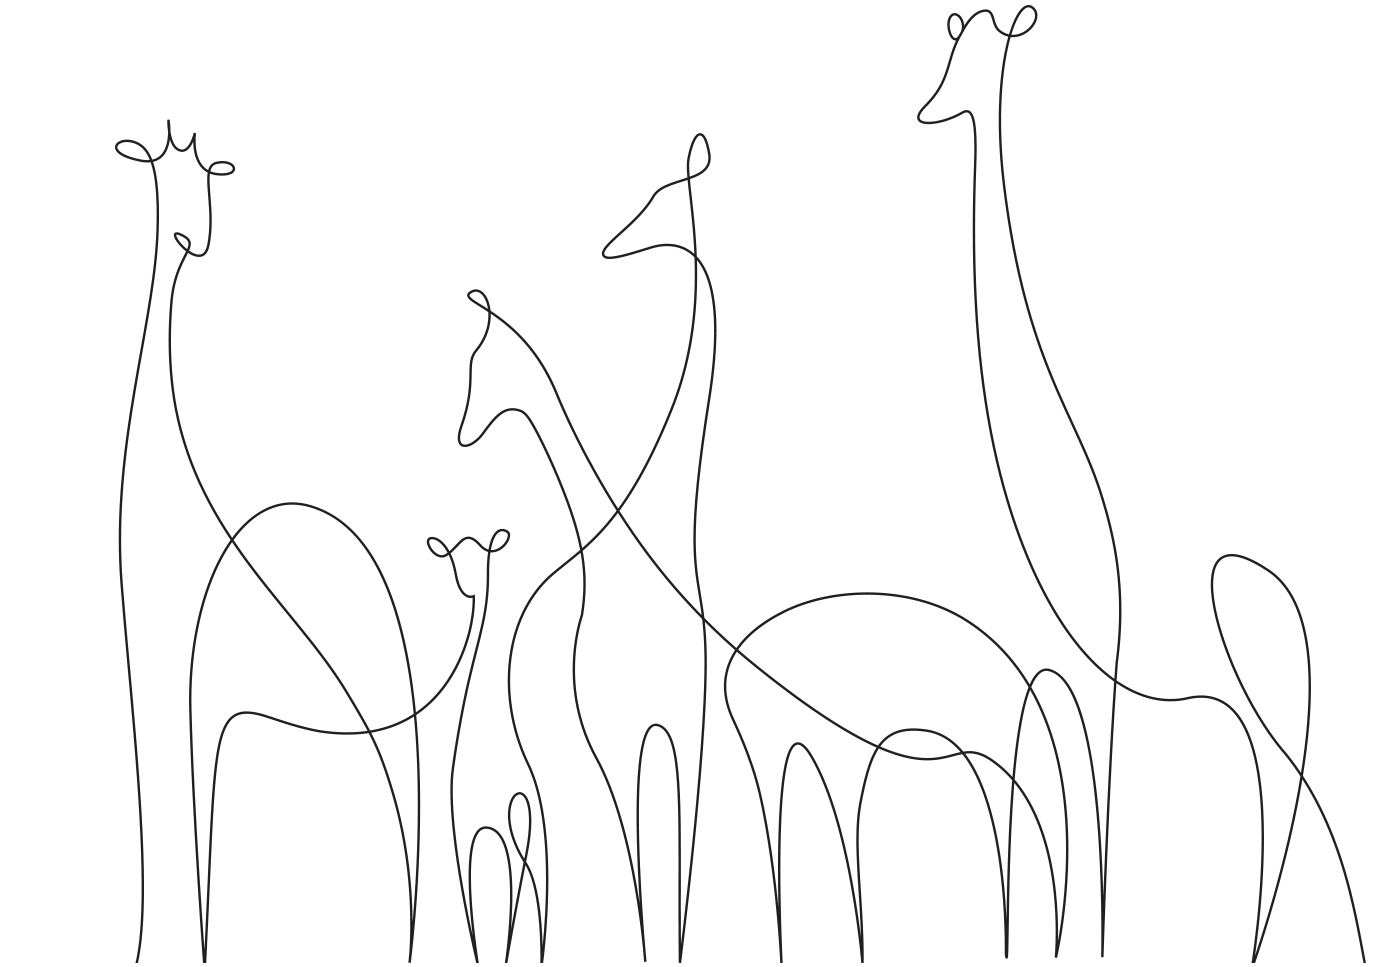 Line Drawing In Qt : One line drawings escola gilpe quart